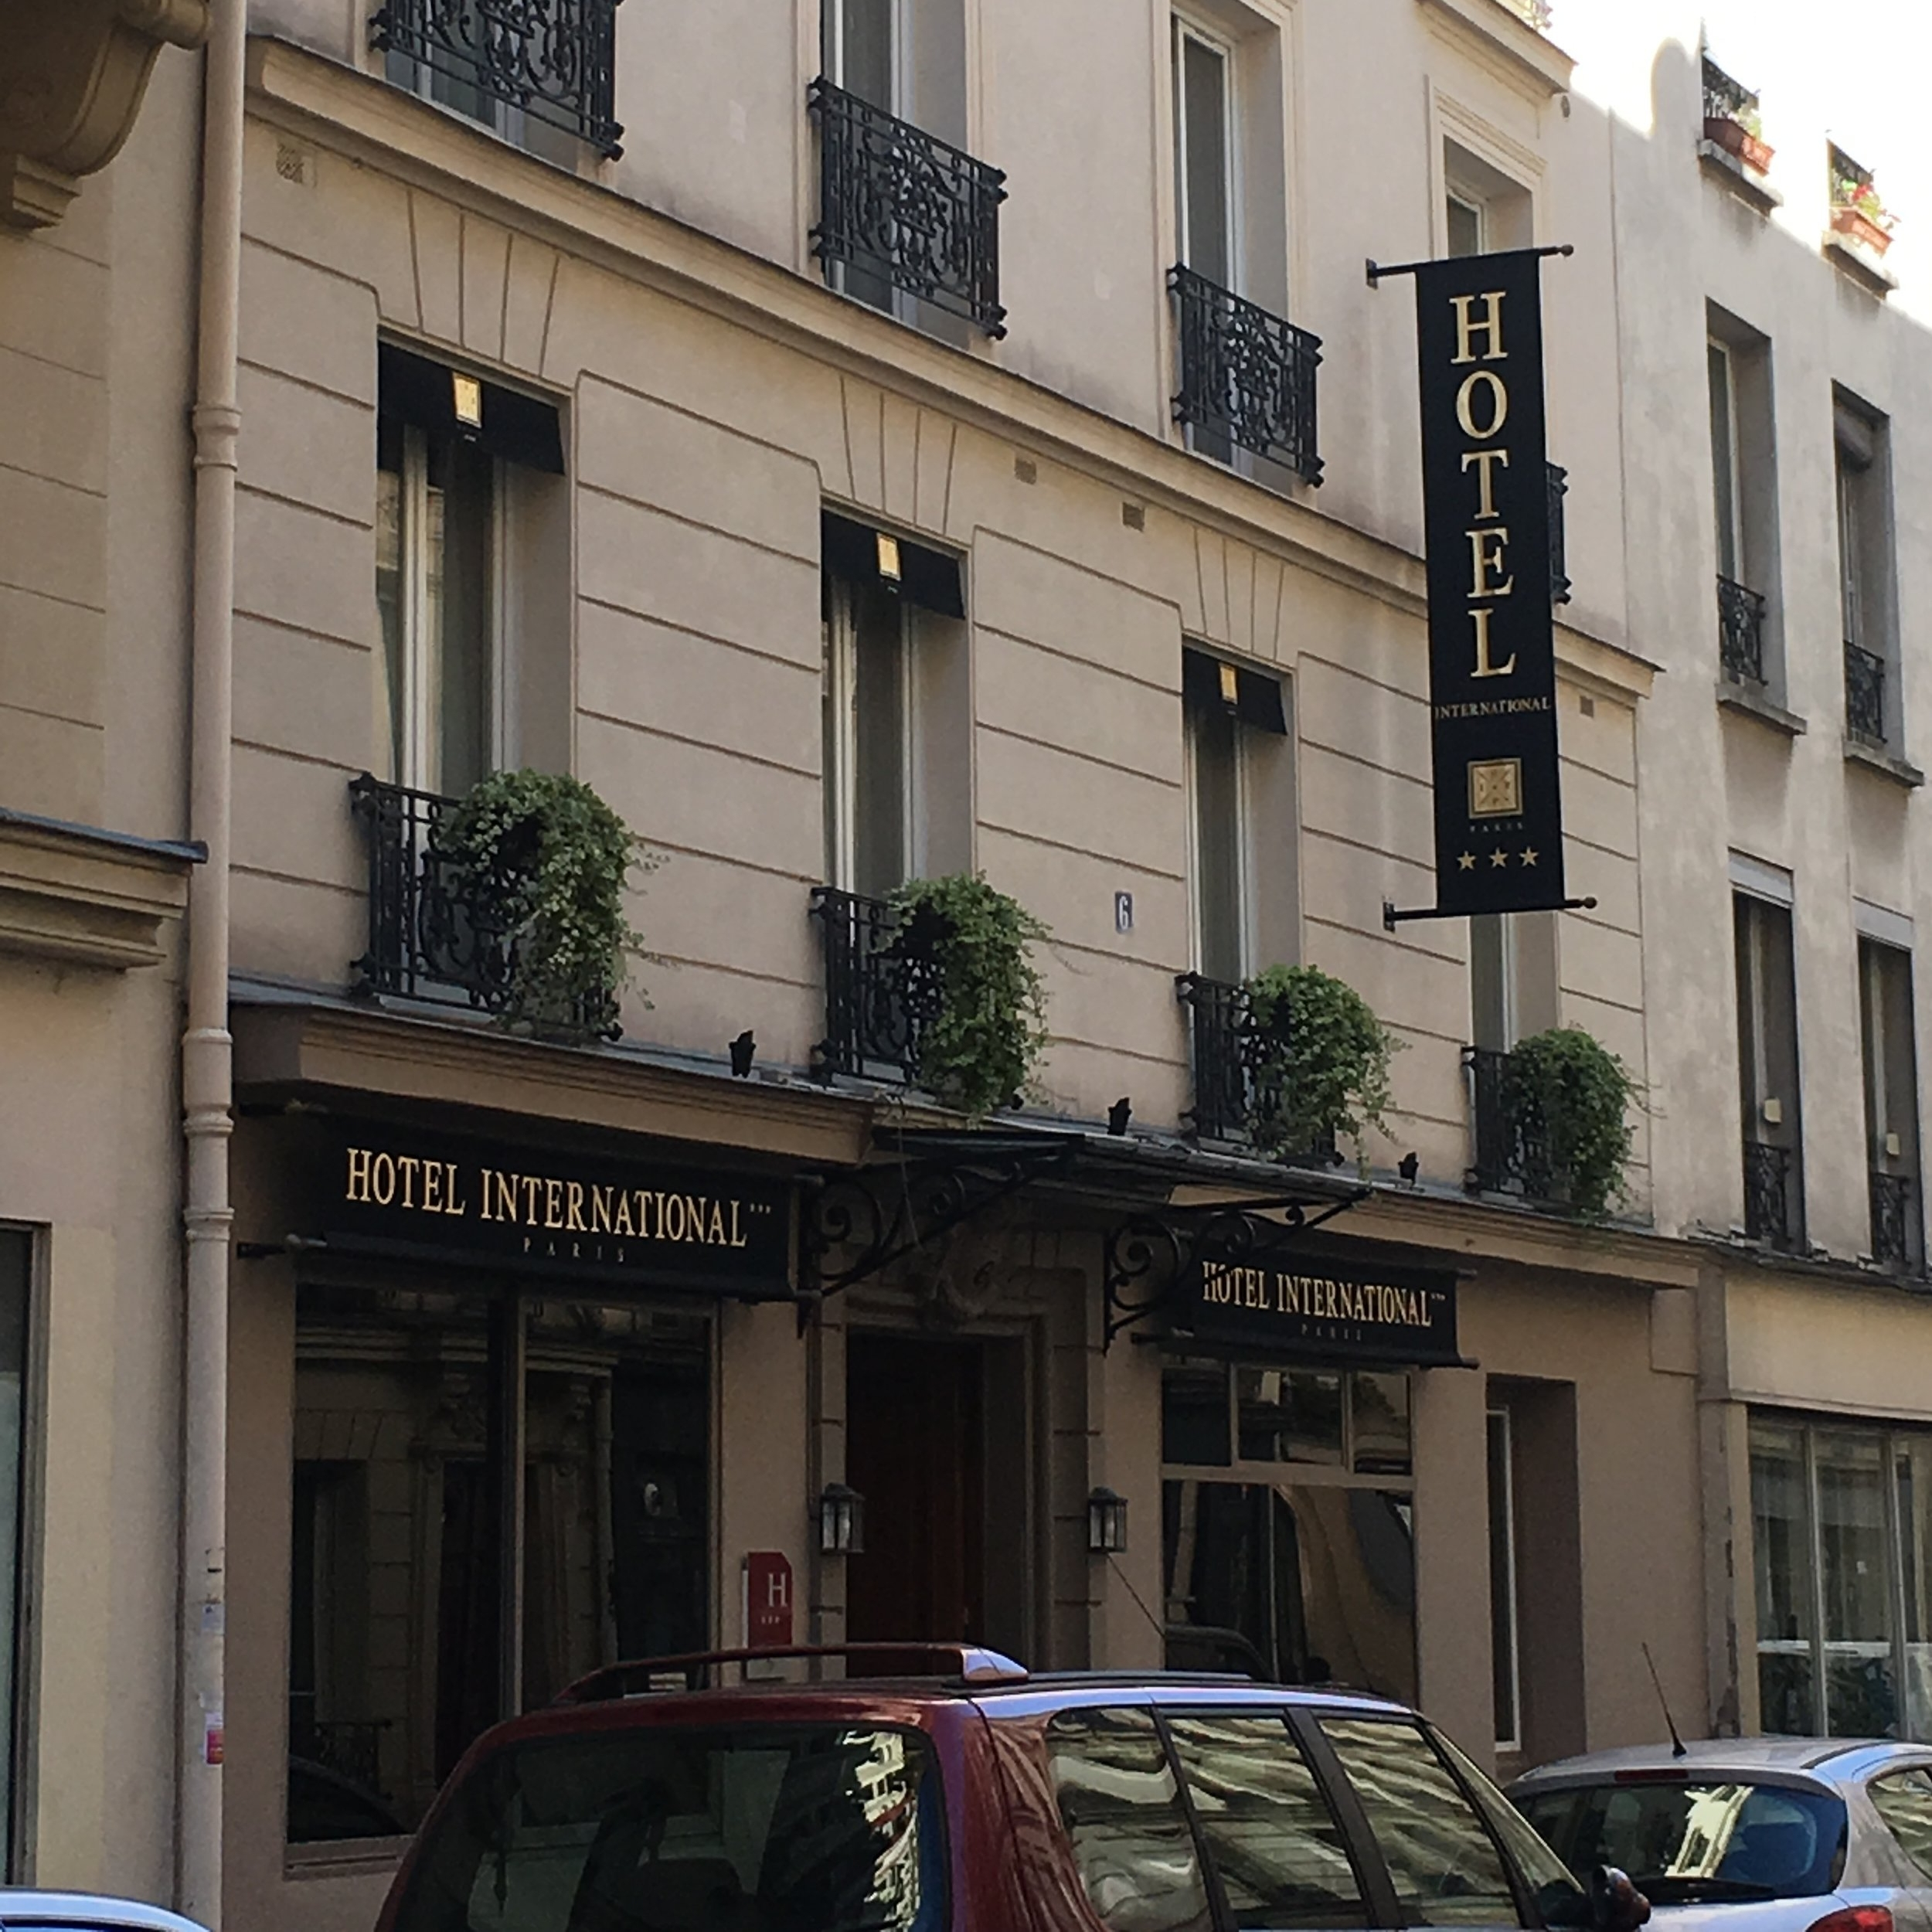 Hotel International, Paris by The Doubtful Traveller